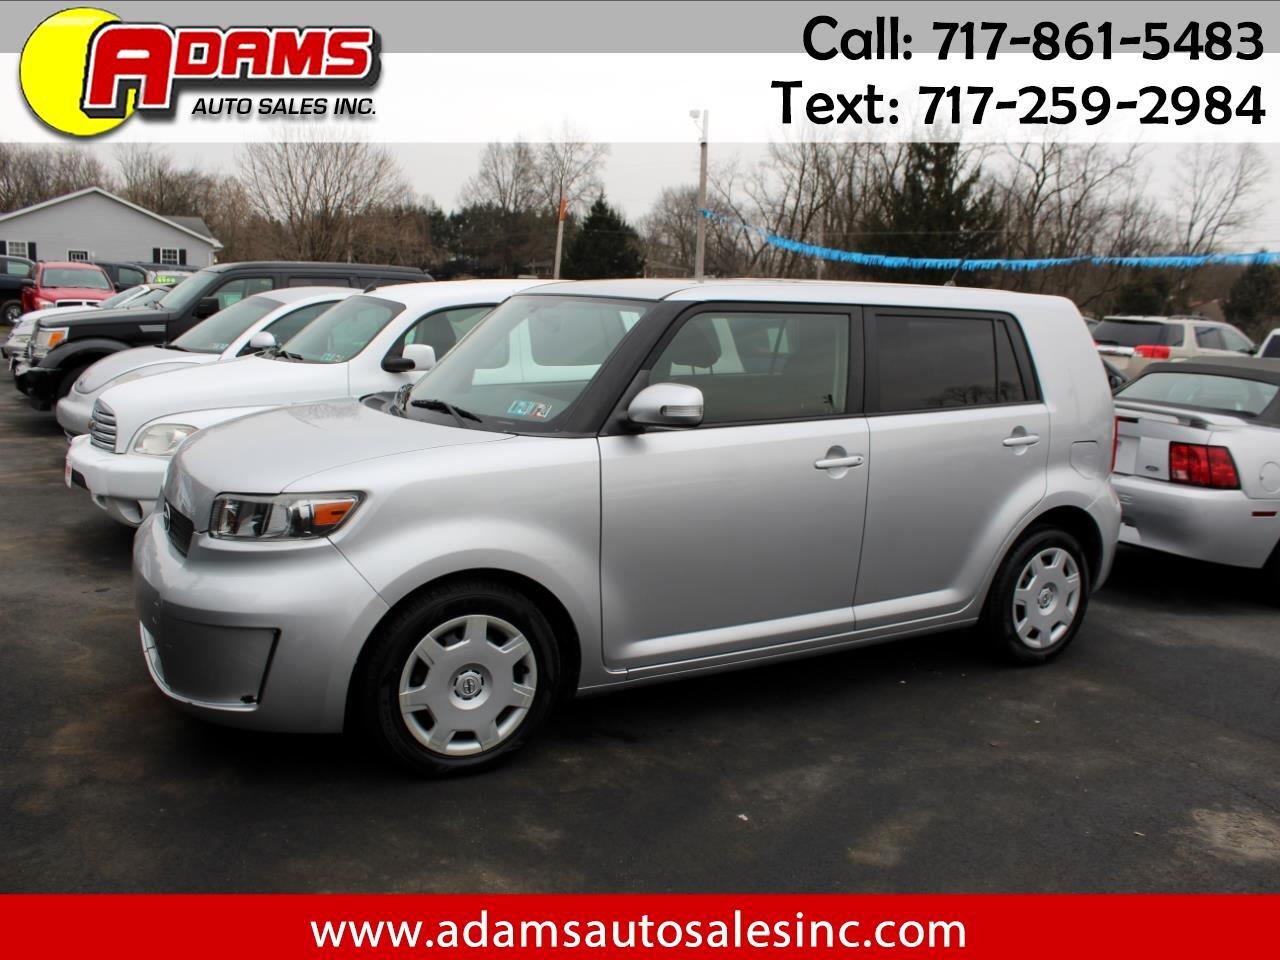 2009 Scion xB 5dr Wgn Man (Natl)